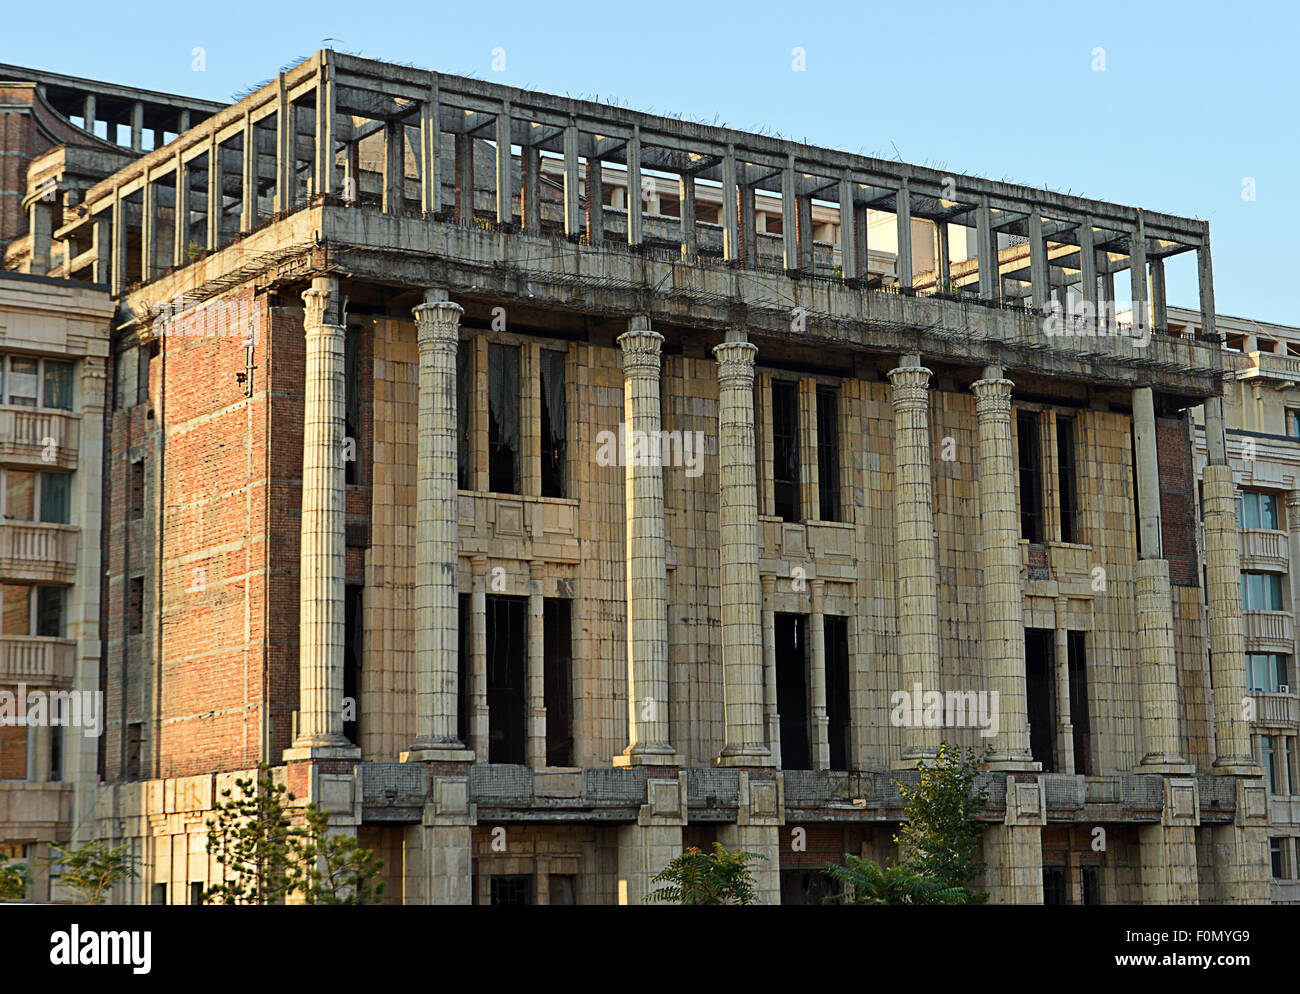 Unfinished Romanian Academy building, Bucharest - Stock Image